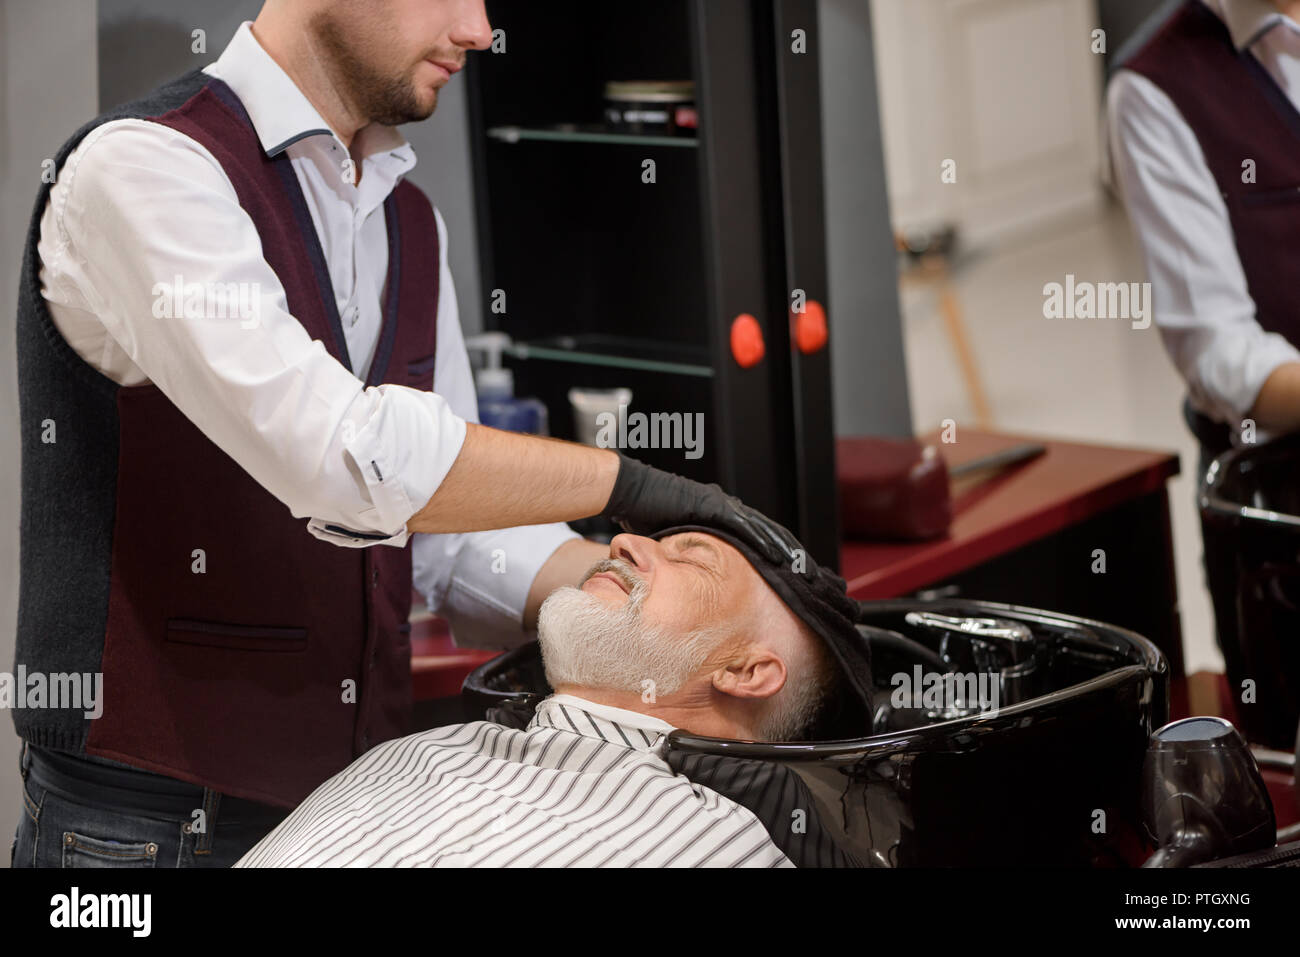 Unrecognizable barber wiping head of client with towel in black wash basin. Male hairdresser styling hair of old client with grey beard. Hairstylist working in barbershop. - Stock Image